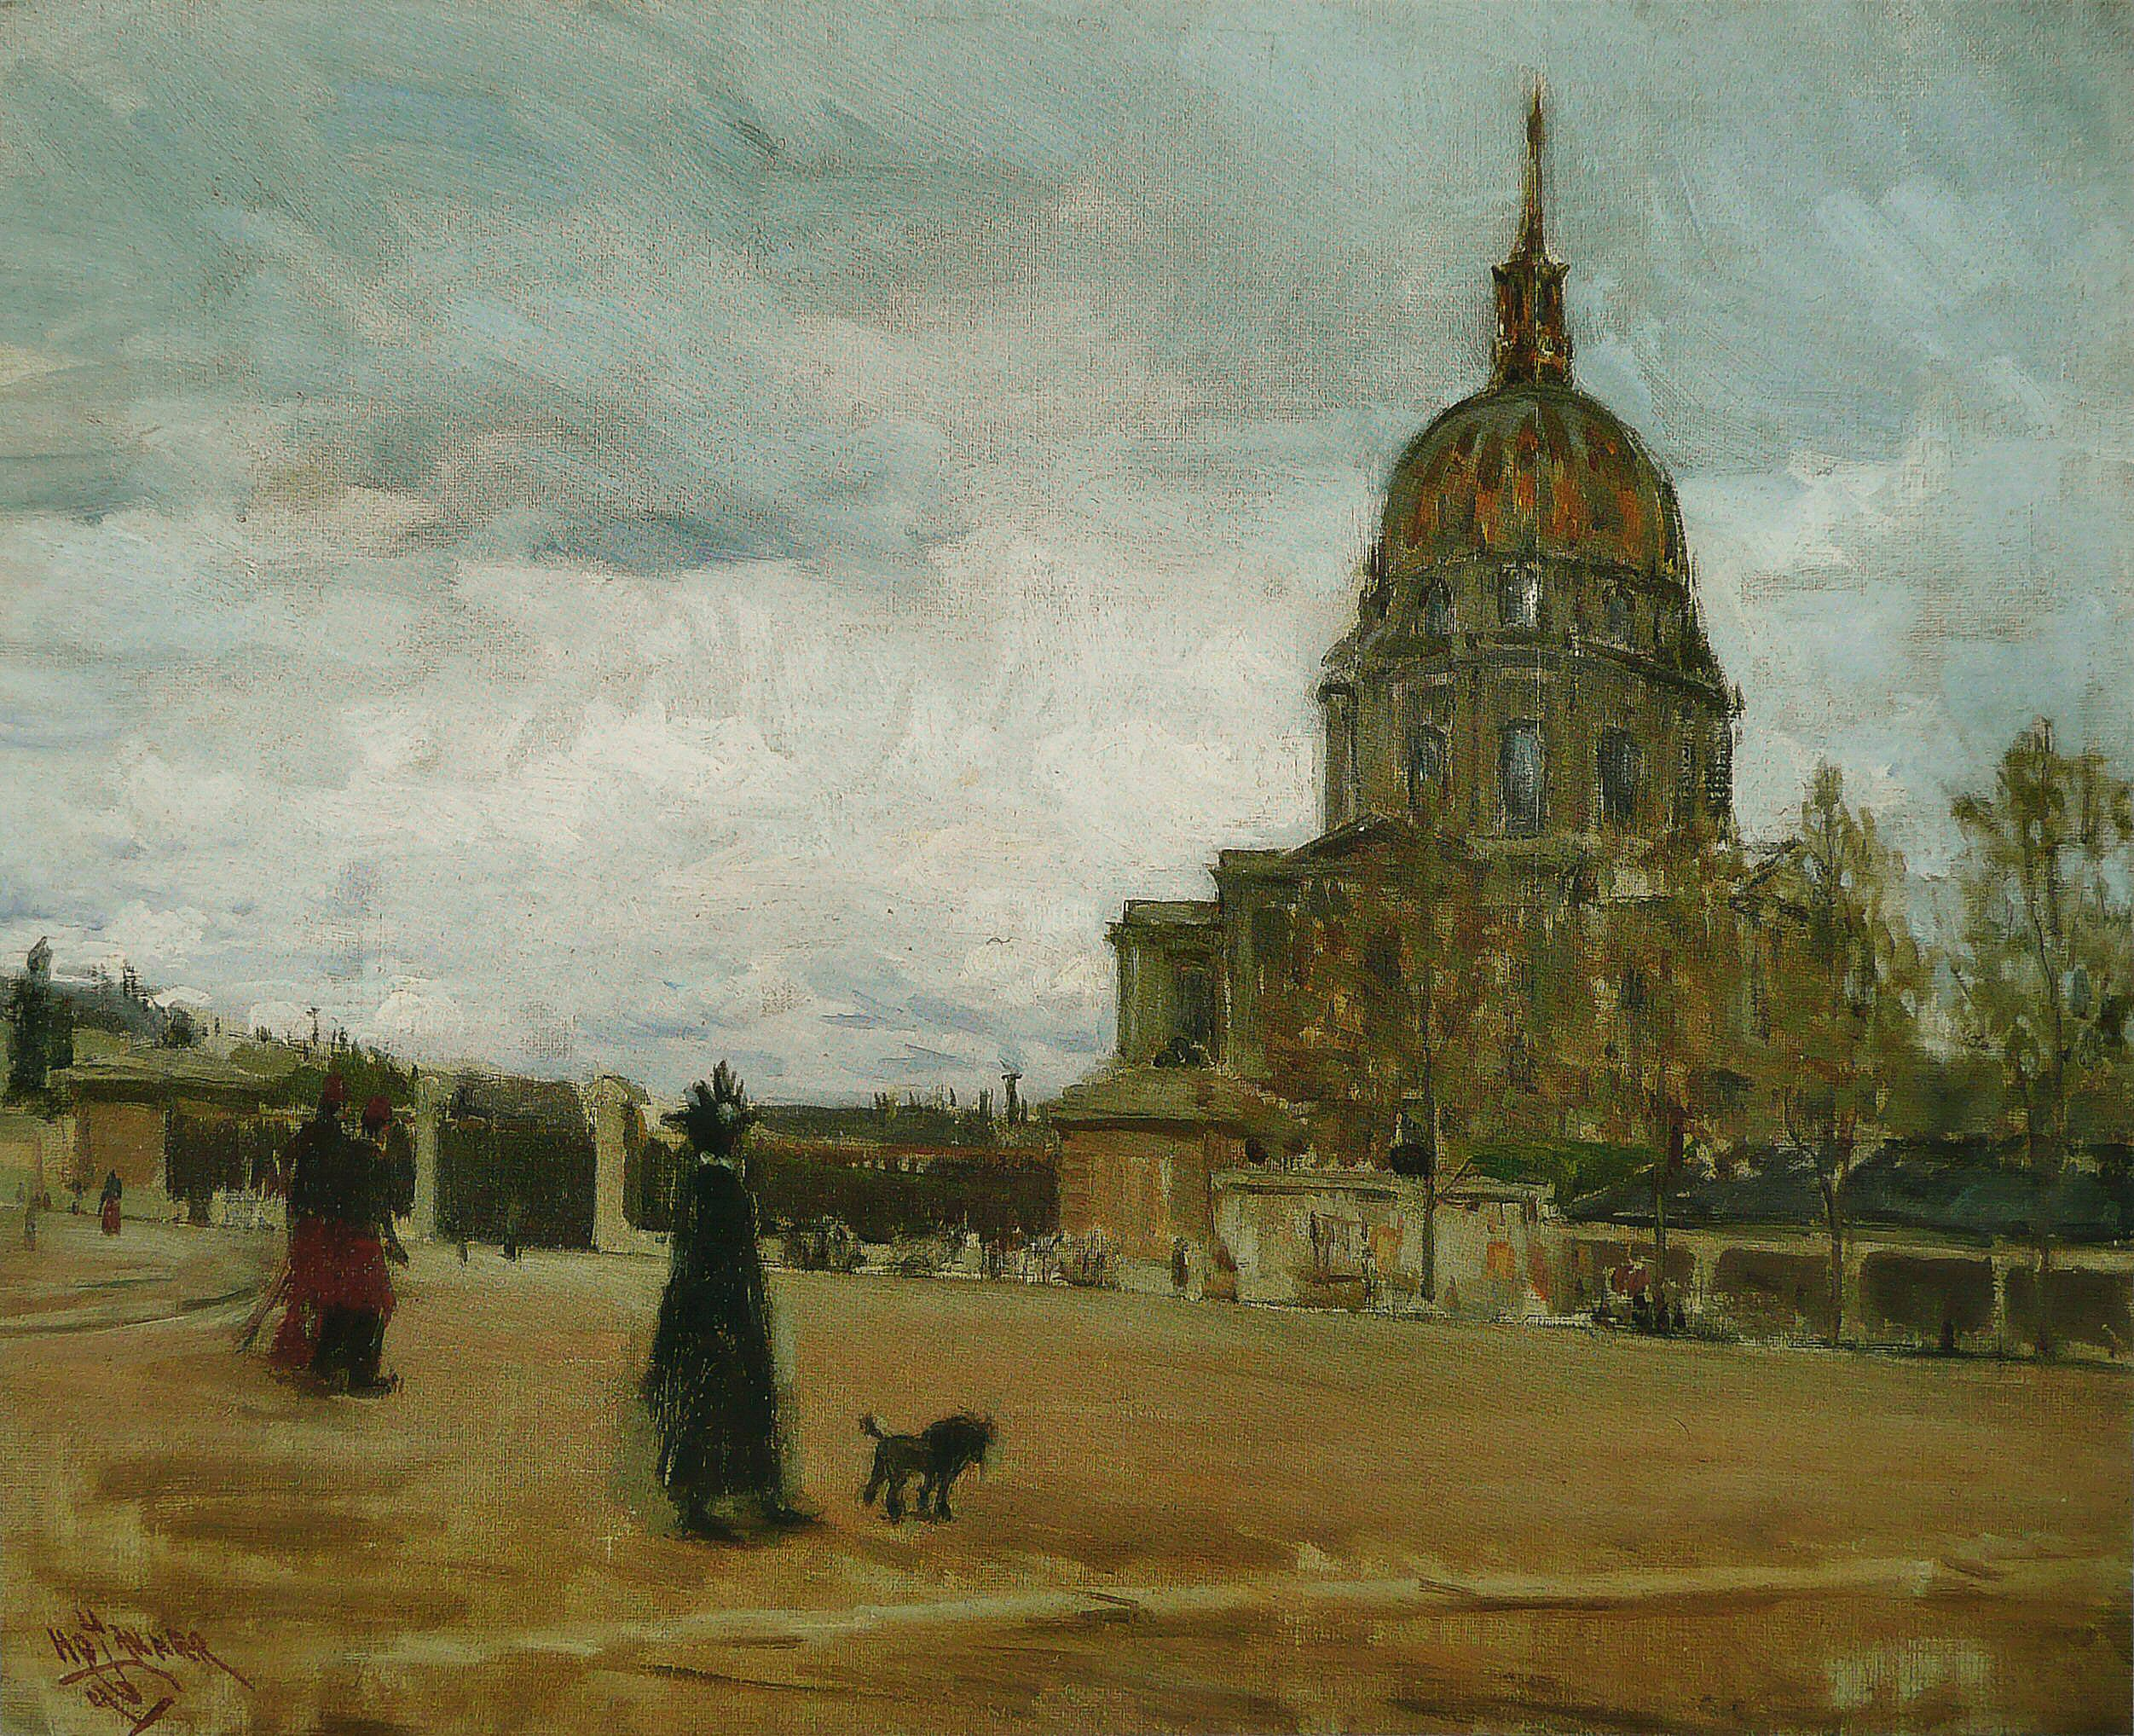 Les Invalides, Paris, 1896 — Henry Ossawa Tanner